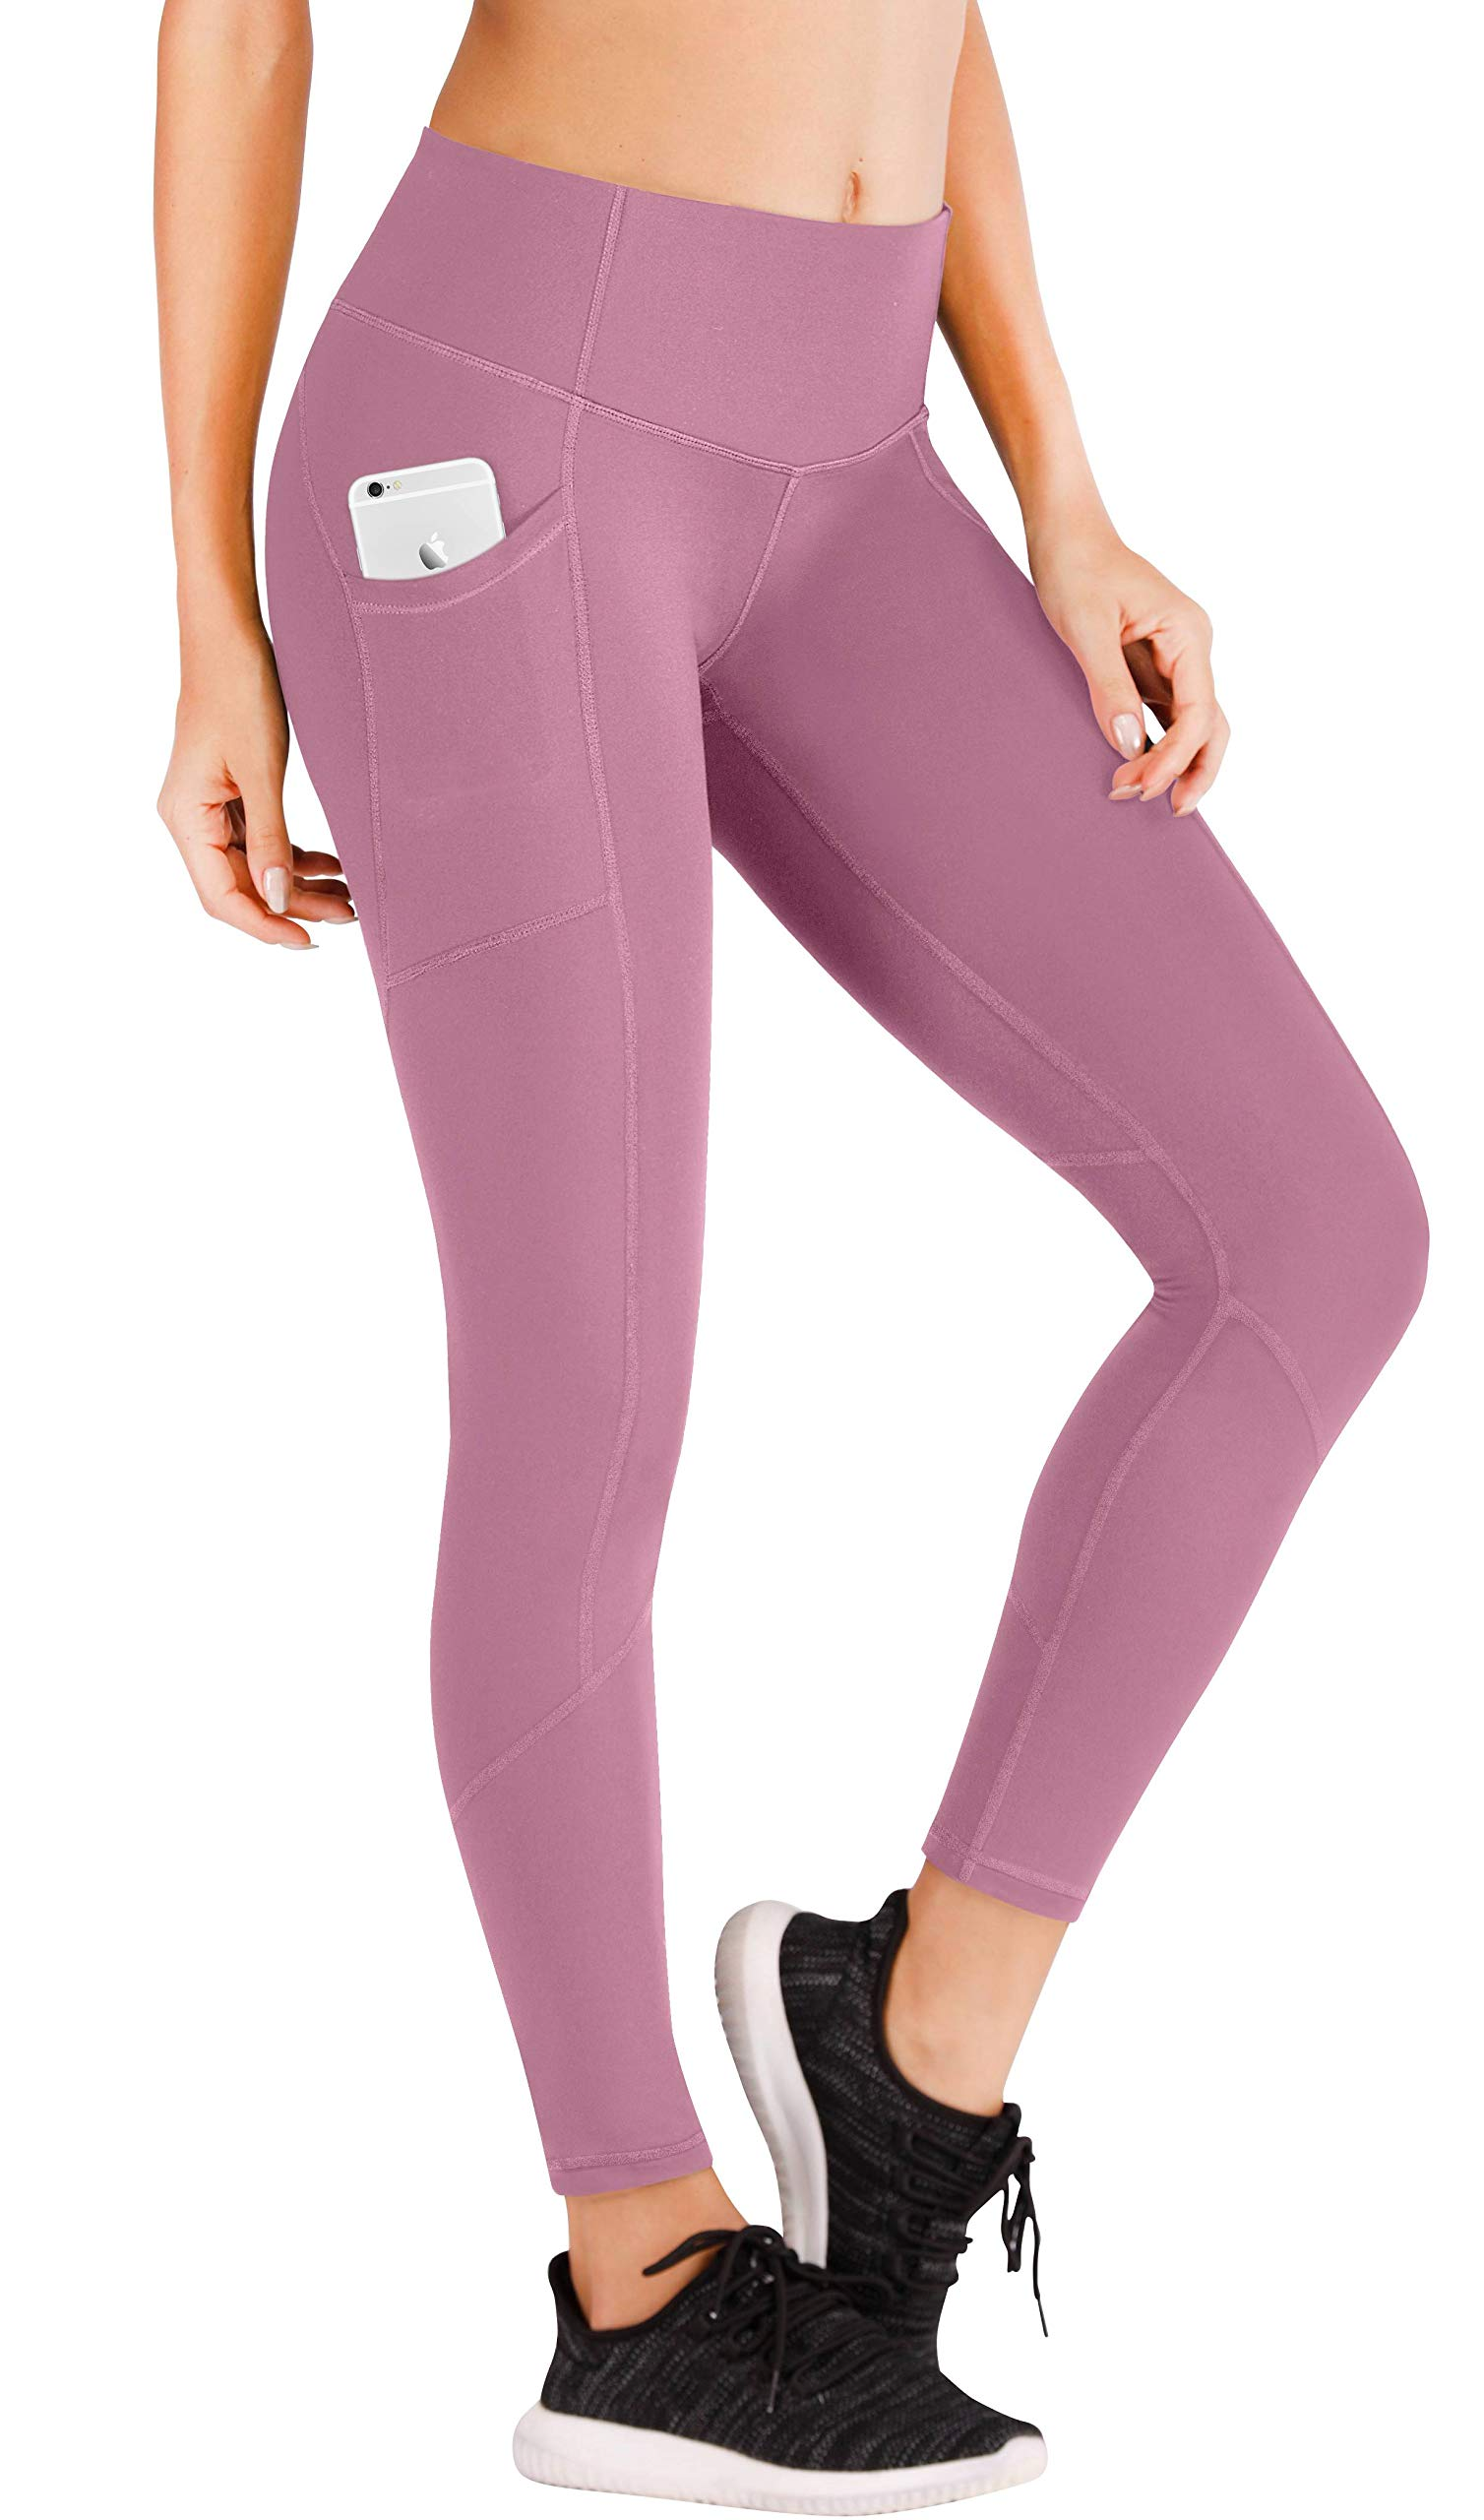 ec92b3158d1b Ewedoos Yoga Pants Women Leggings with Pockets High Waist Tummy Control Workout  Pants for Women Running Tights